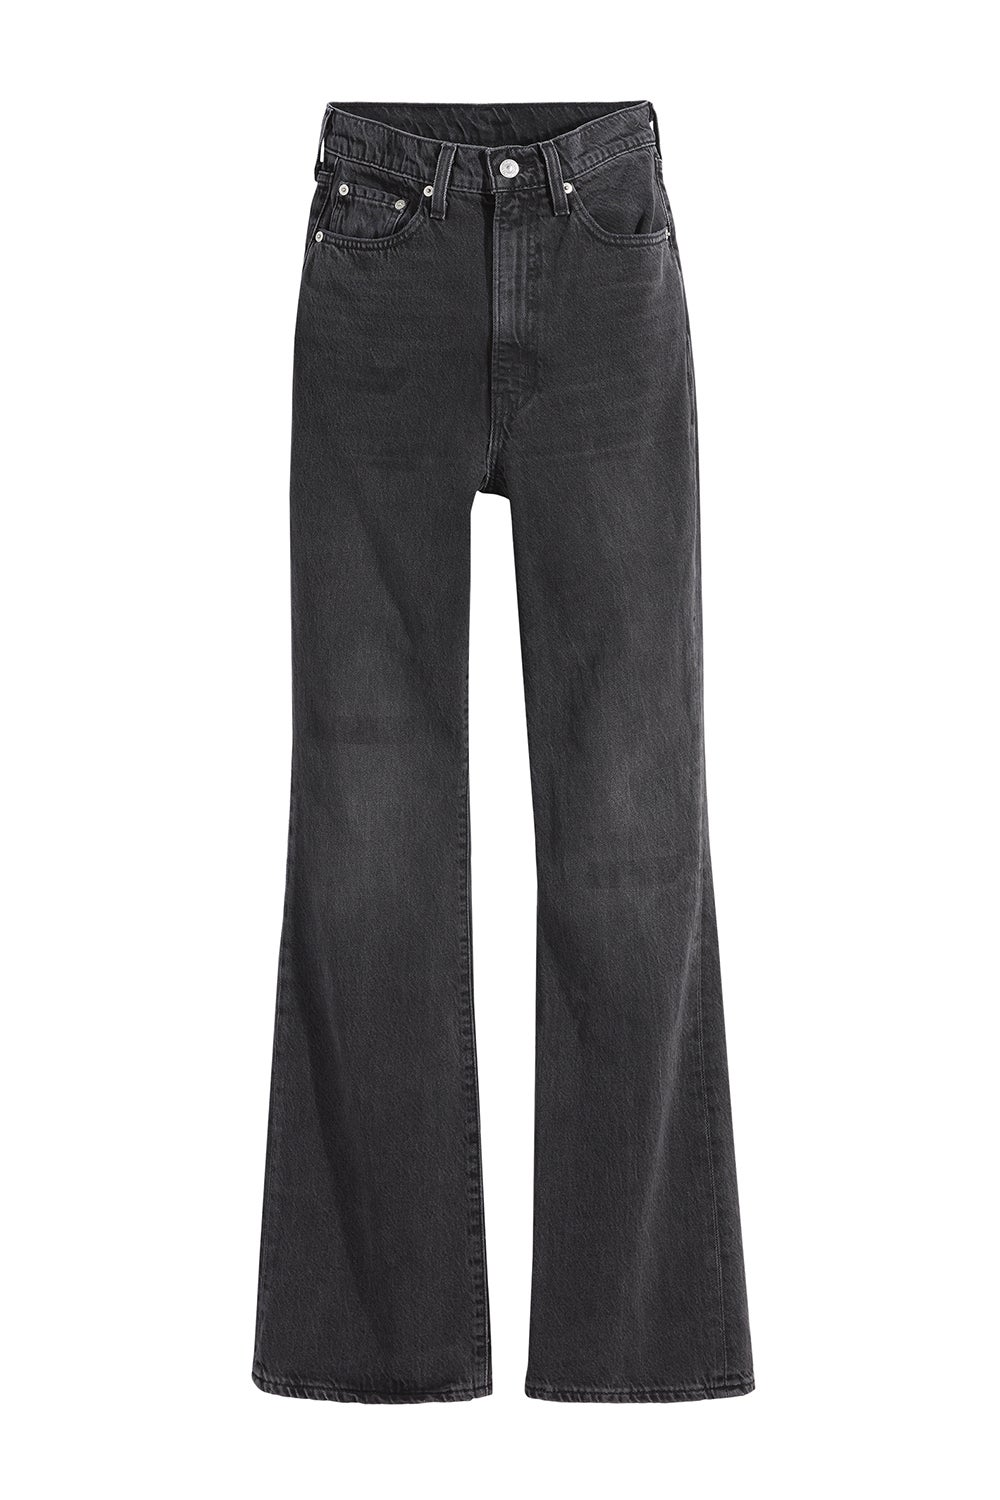 Levi's 70s High Flare Jeans Such A Doozie